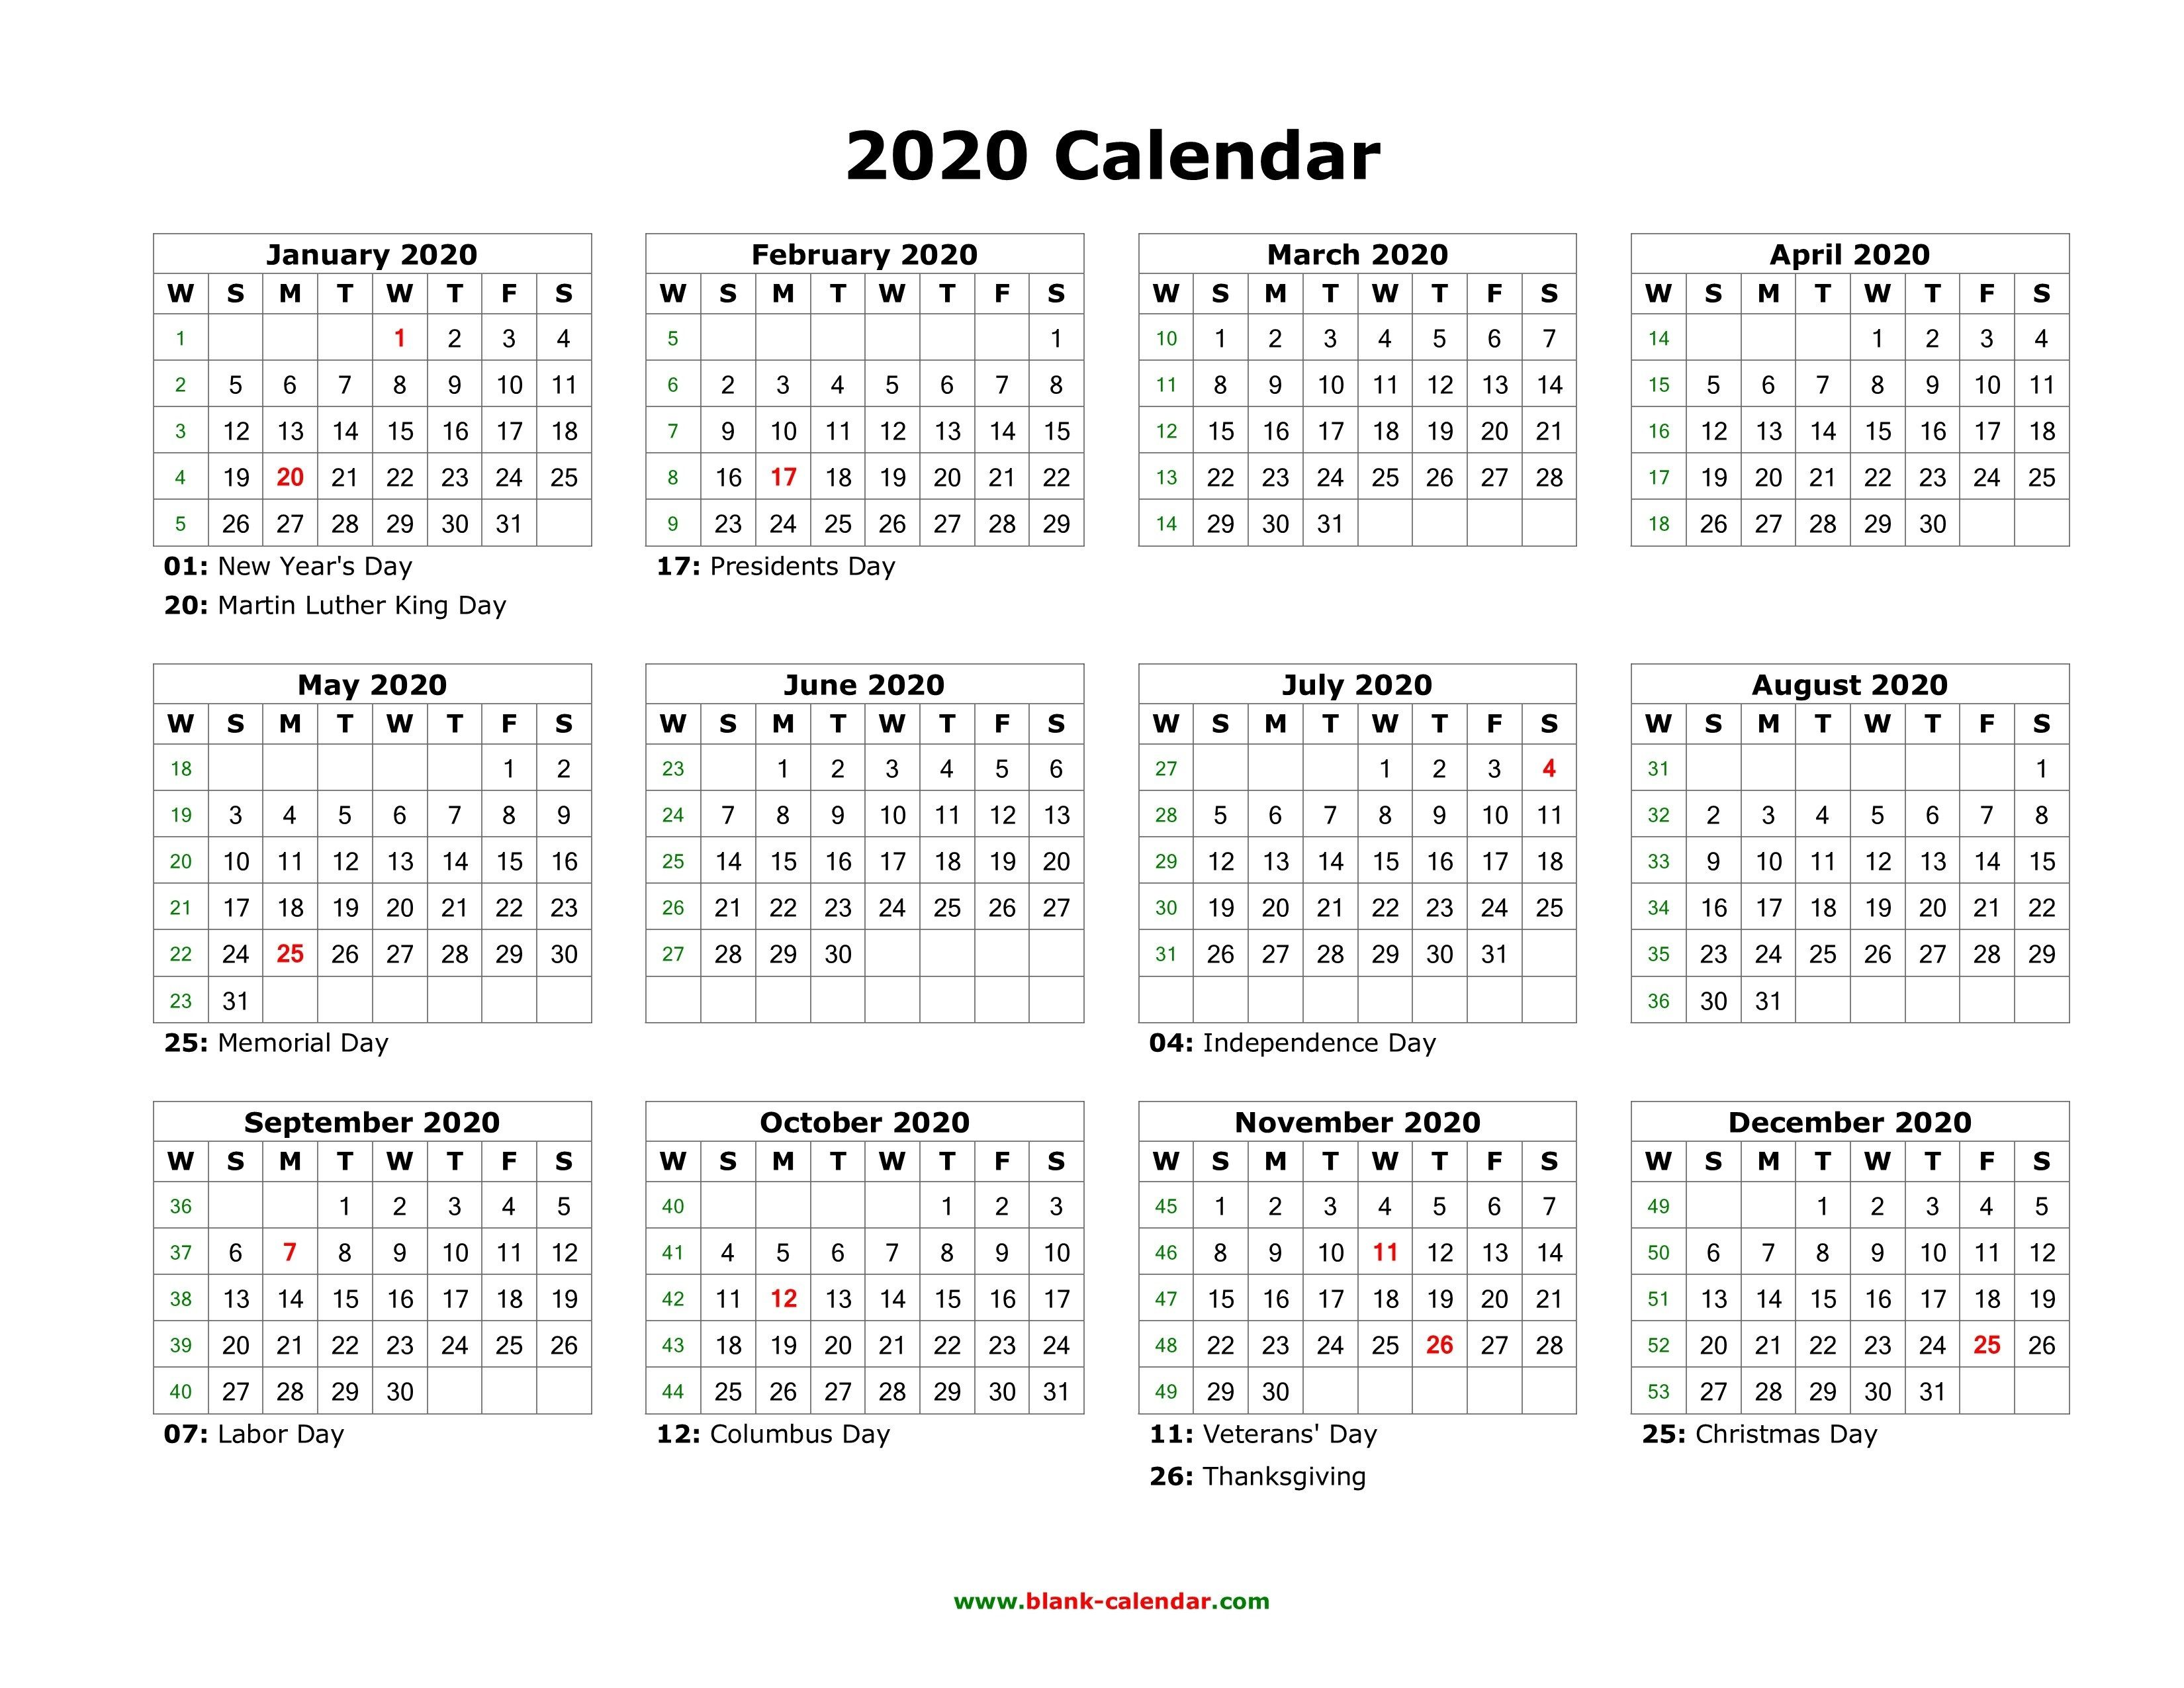 003 Stunning 2020 Blank Calendar Template Image  Printable Monthly Word Downloadable With HolidayFull